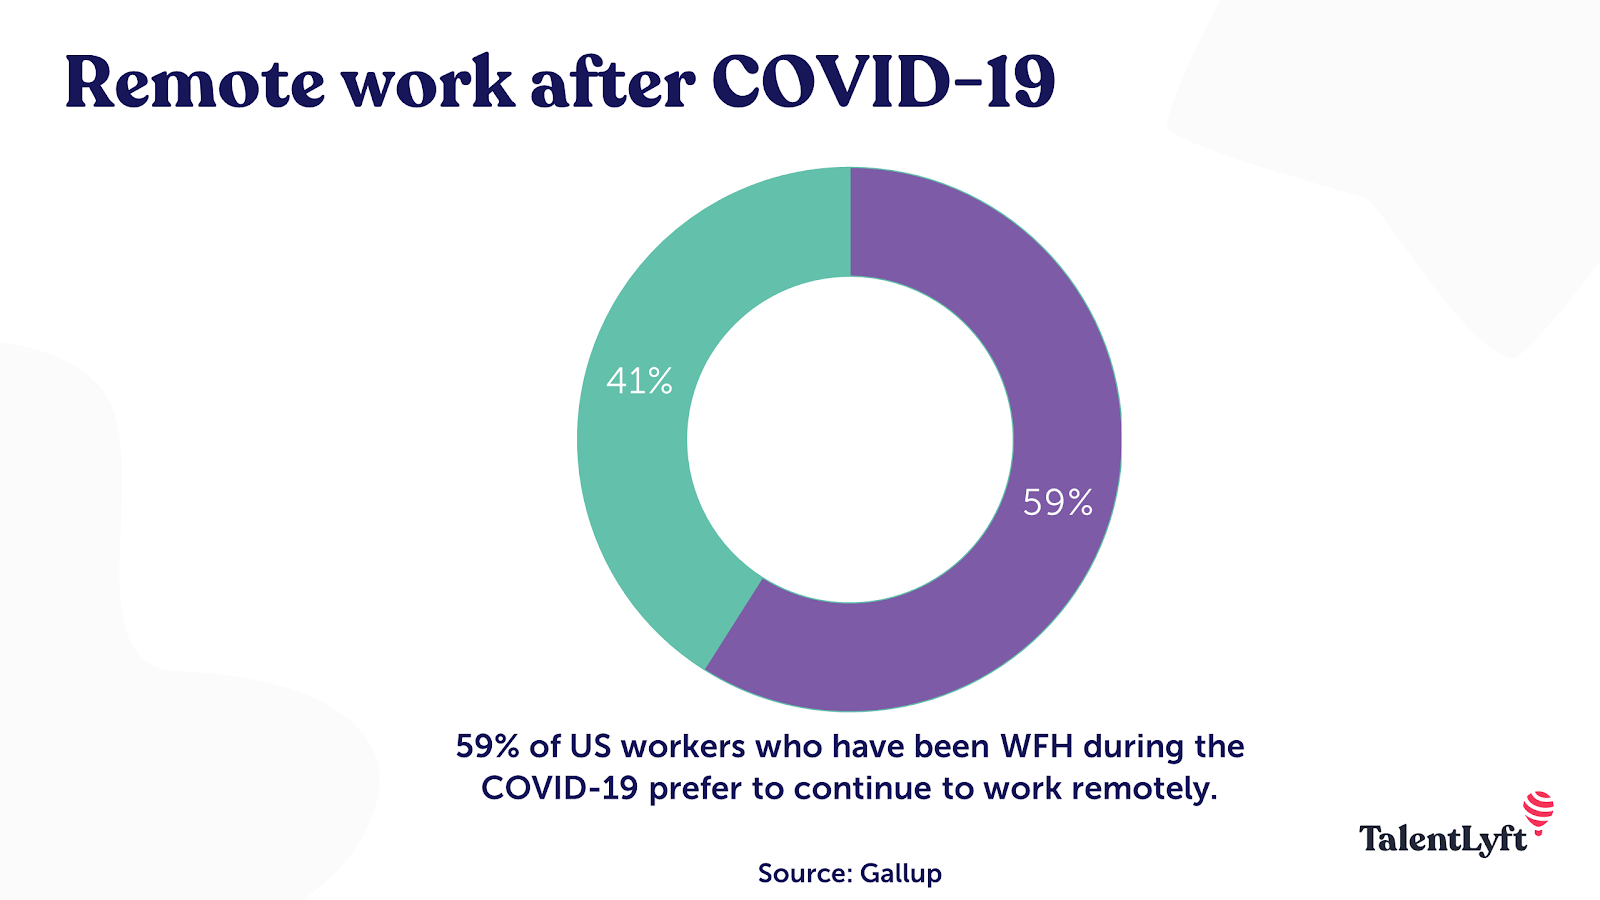 Remote work statistic